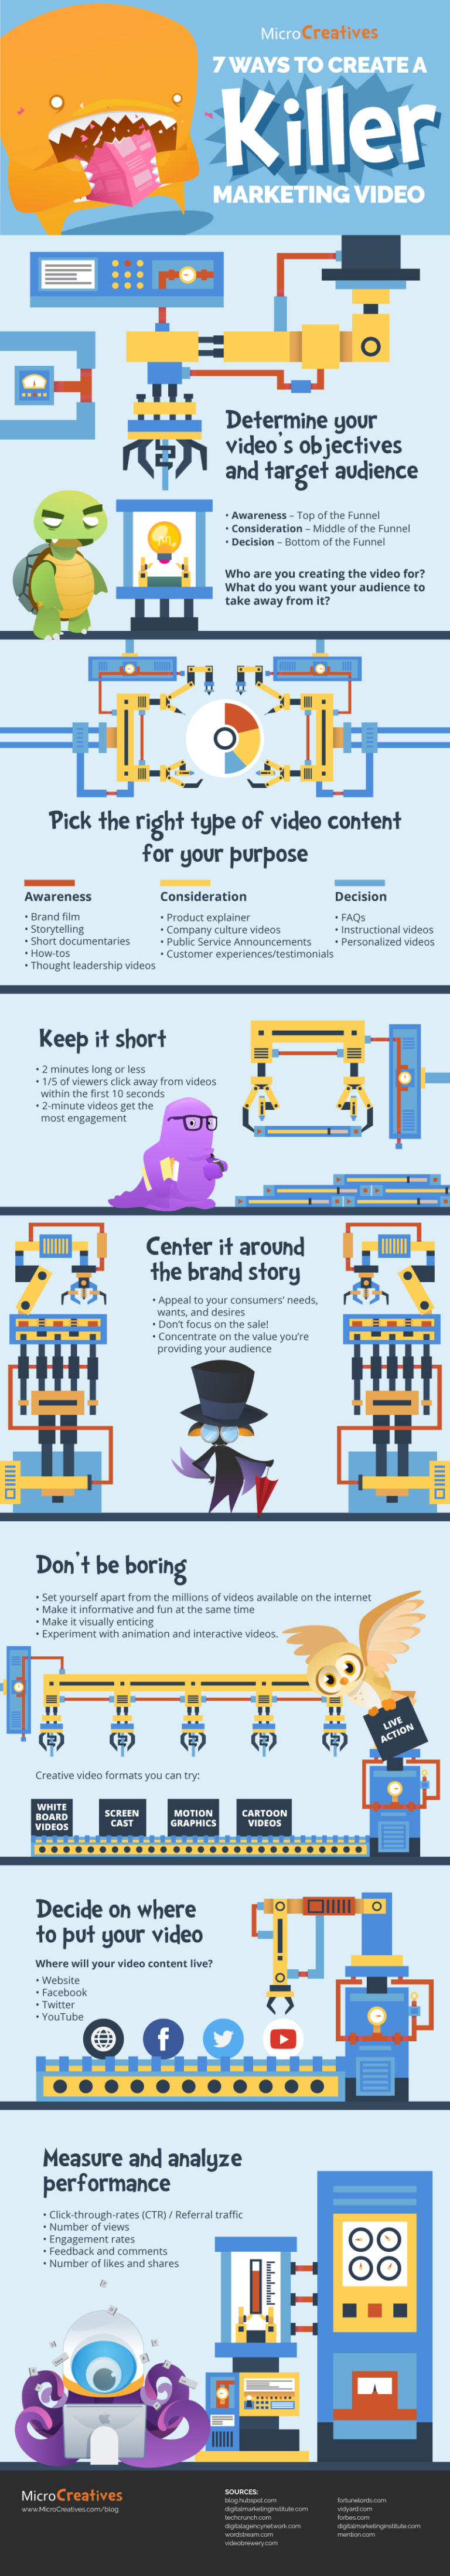 7-Ways-to-Create-a-Killer-Marketing-Video-infographic